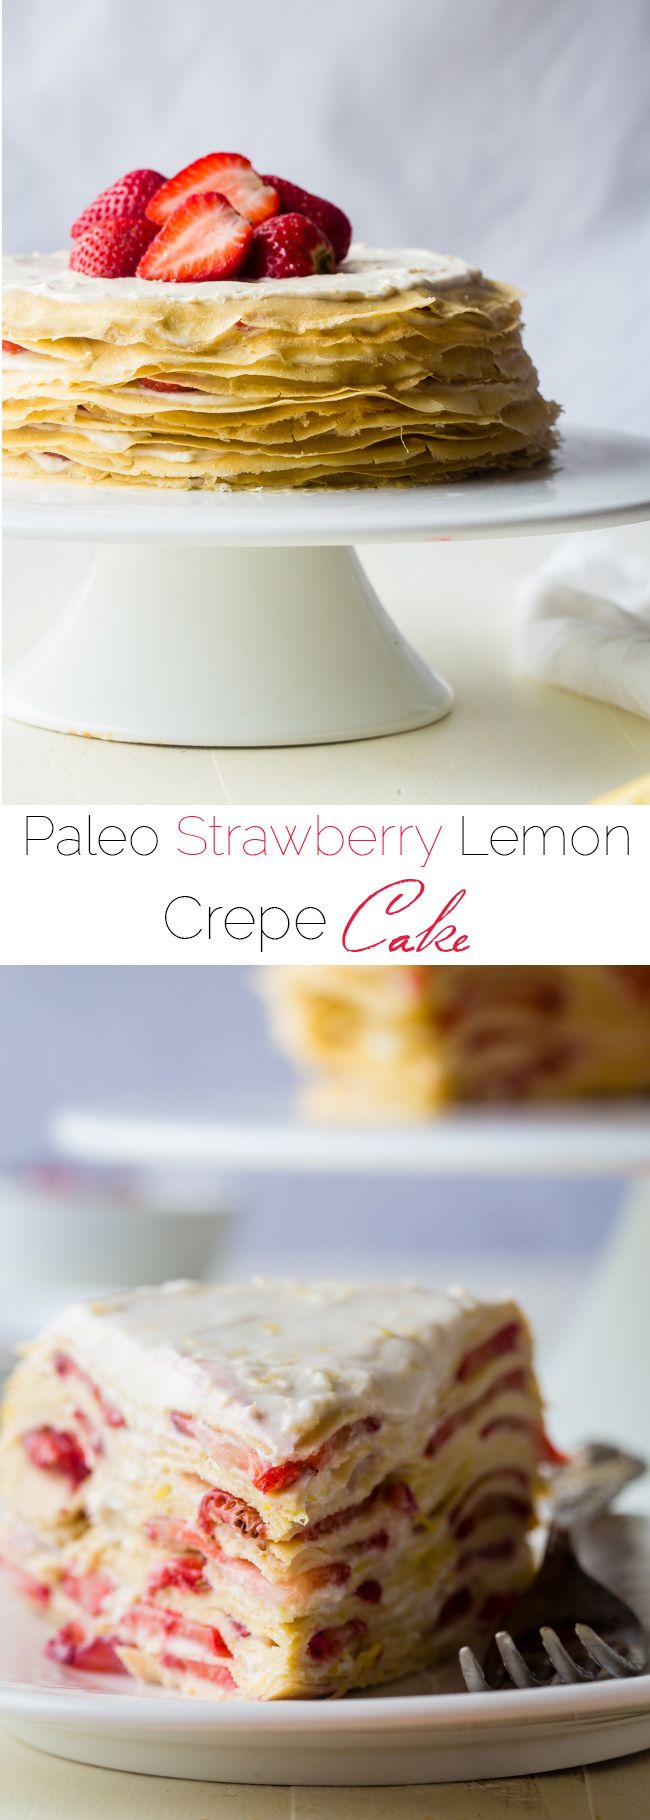 Strawberry Lemon Paleo Crepe Cake with Coconut Cream - This cake is made out of paleo crepes layered with rich, sweet lemon coconut cream and fresh strawberries. It's a gluten free dessert, that's perfect for a spring brunch or Mothers day! | Foodfaithfitness.com | @FoodFaithFit: